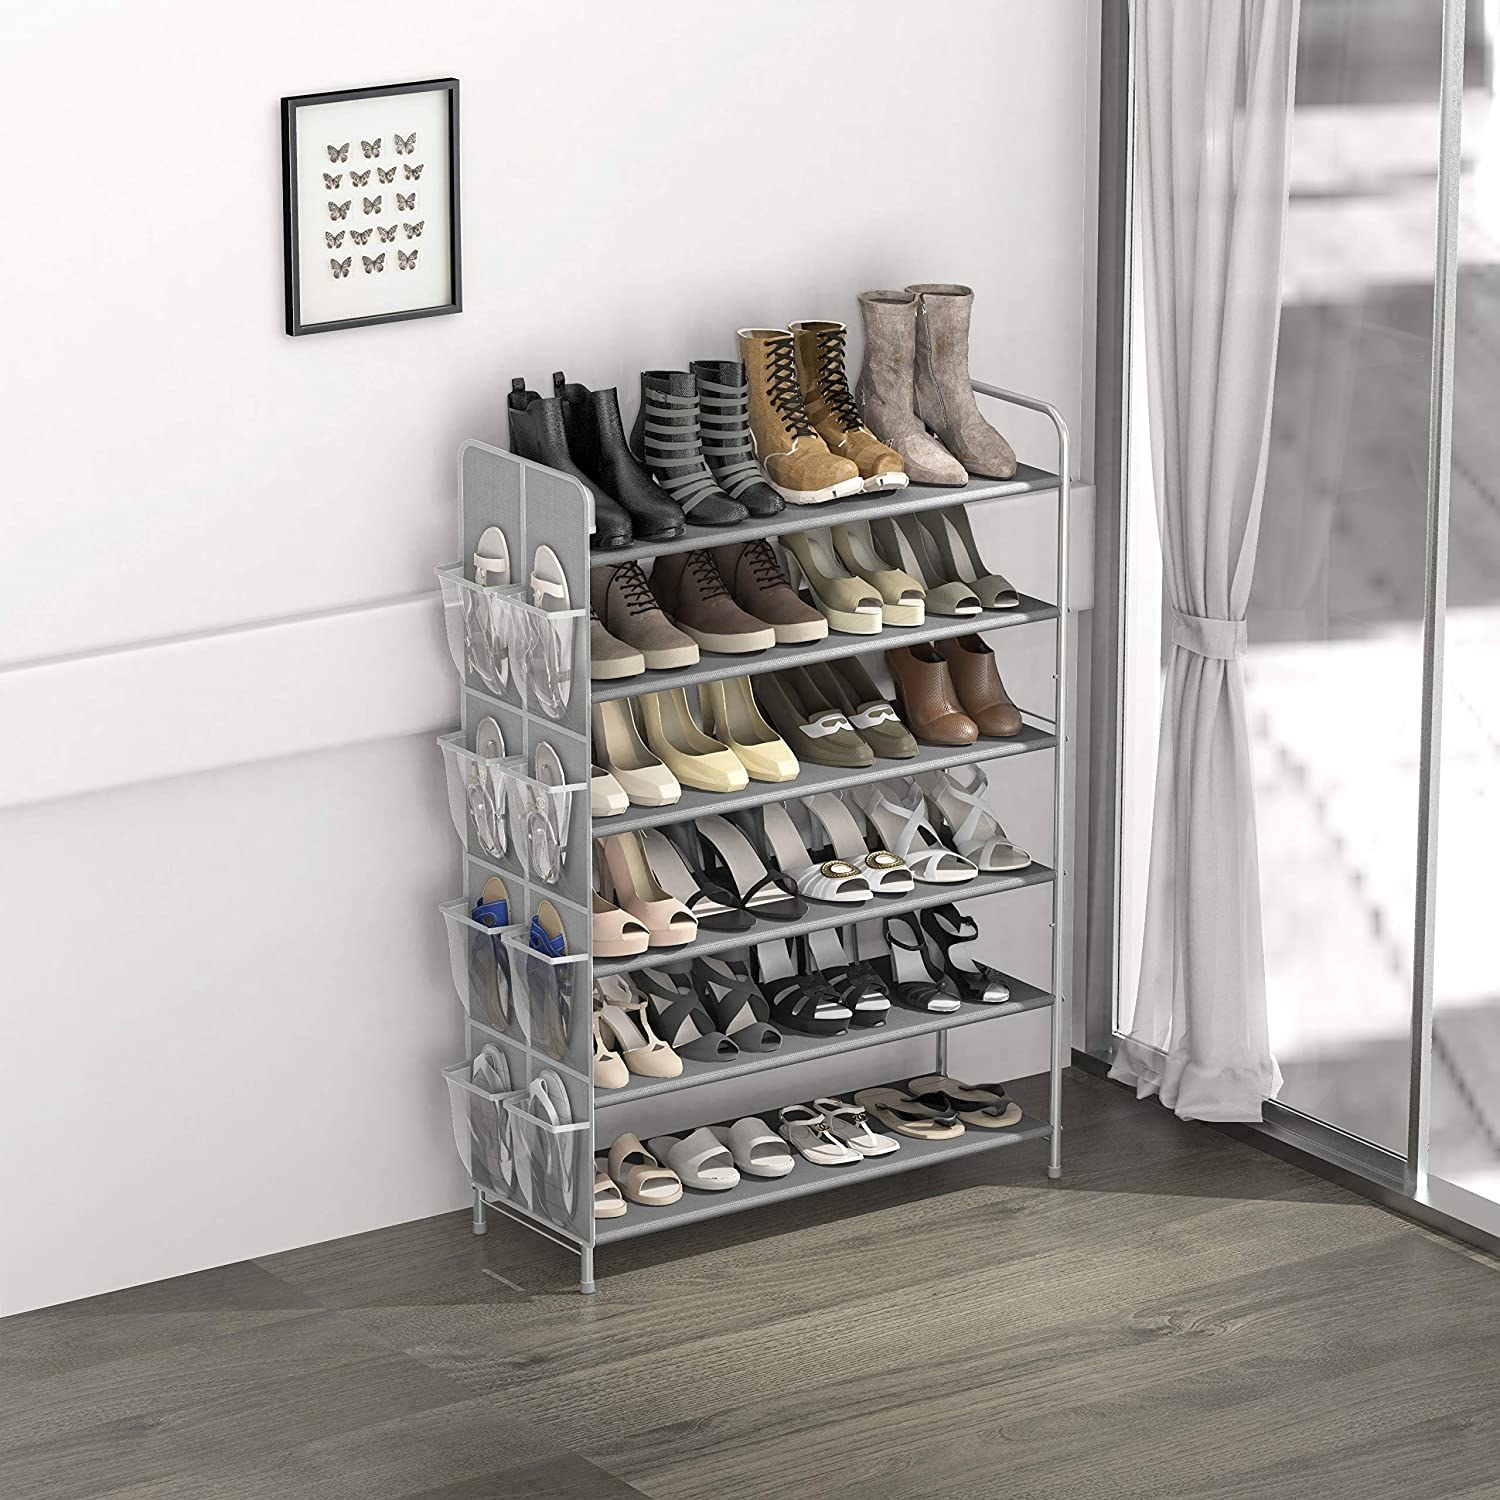 a shoe rack filled with shoes and slippers on the side